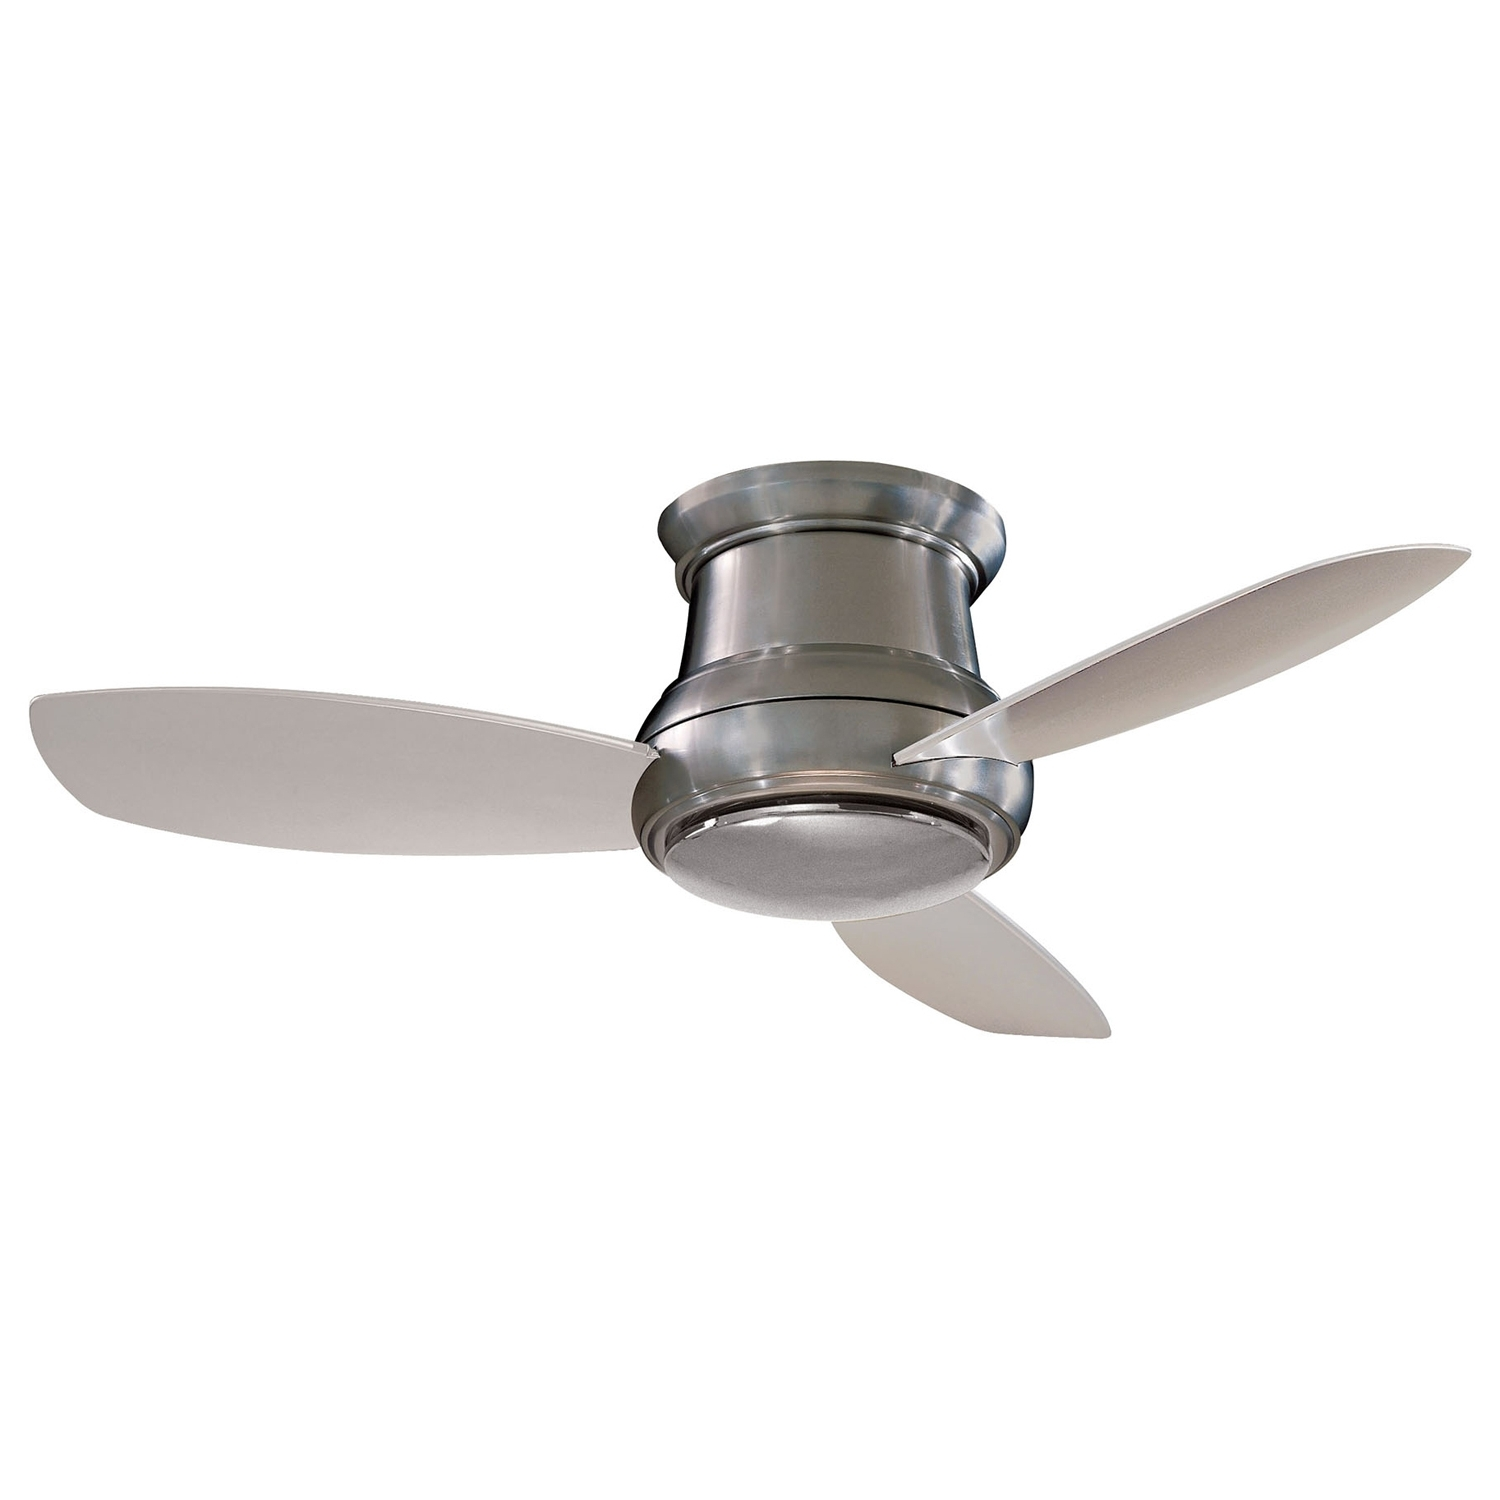 Most Current Ceiling Fan: Remarkable 36 Outdoor Ceiling Fan For Home 36 Inch Fans Pertaining To 24 Inch Outdoor Ceiling Fans With Light (View 9 of 20)